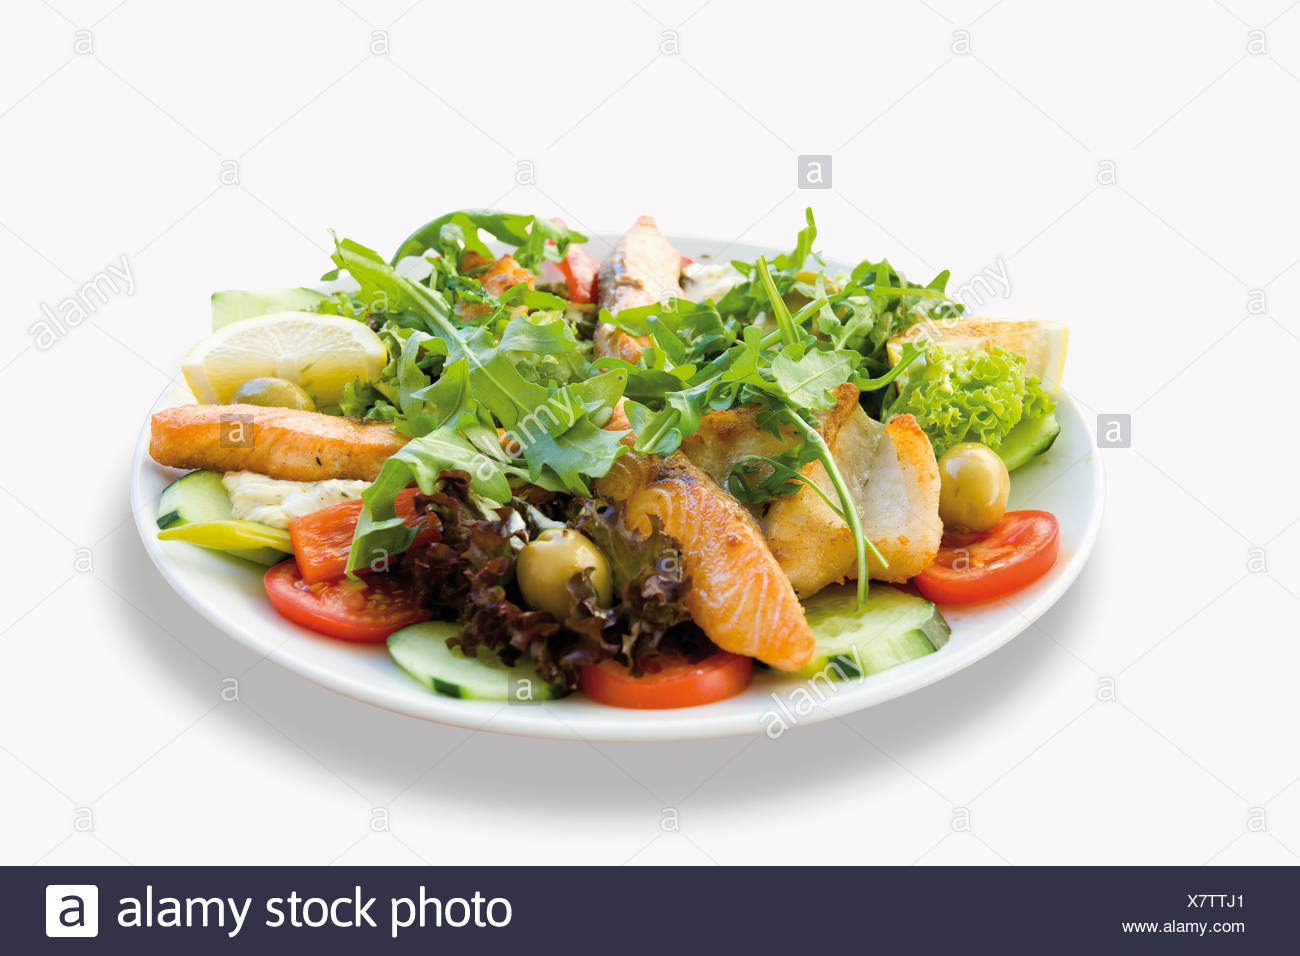 Fried fish salmon garnished with mixed salad and pike-perch in plate on white background - Stock Image